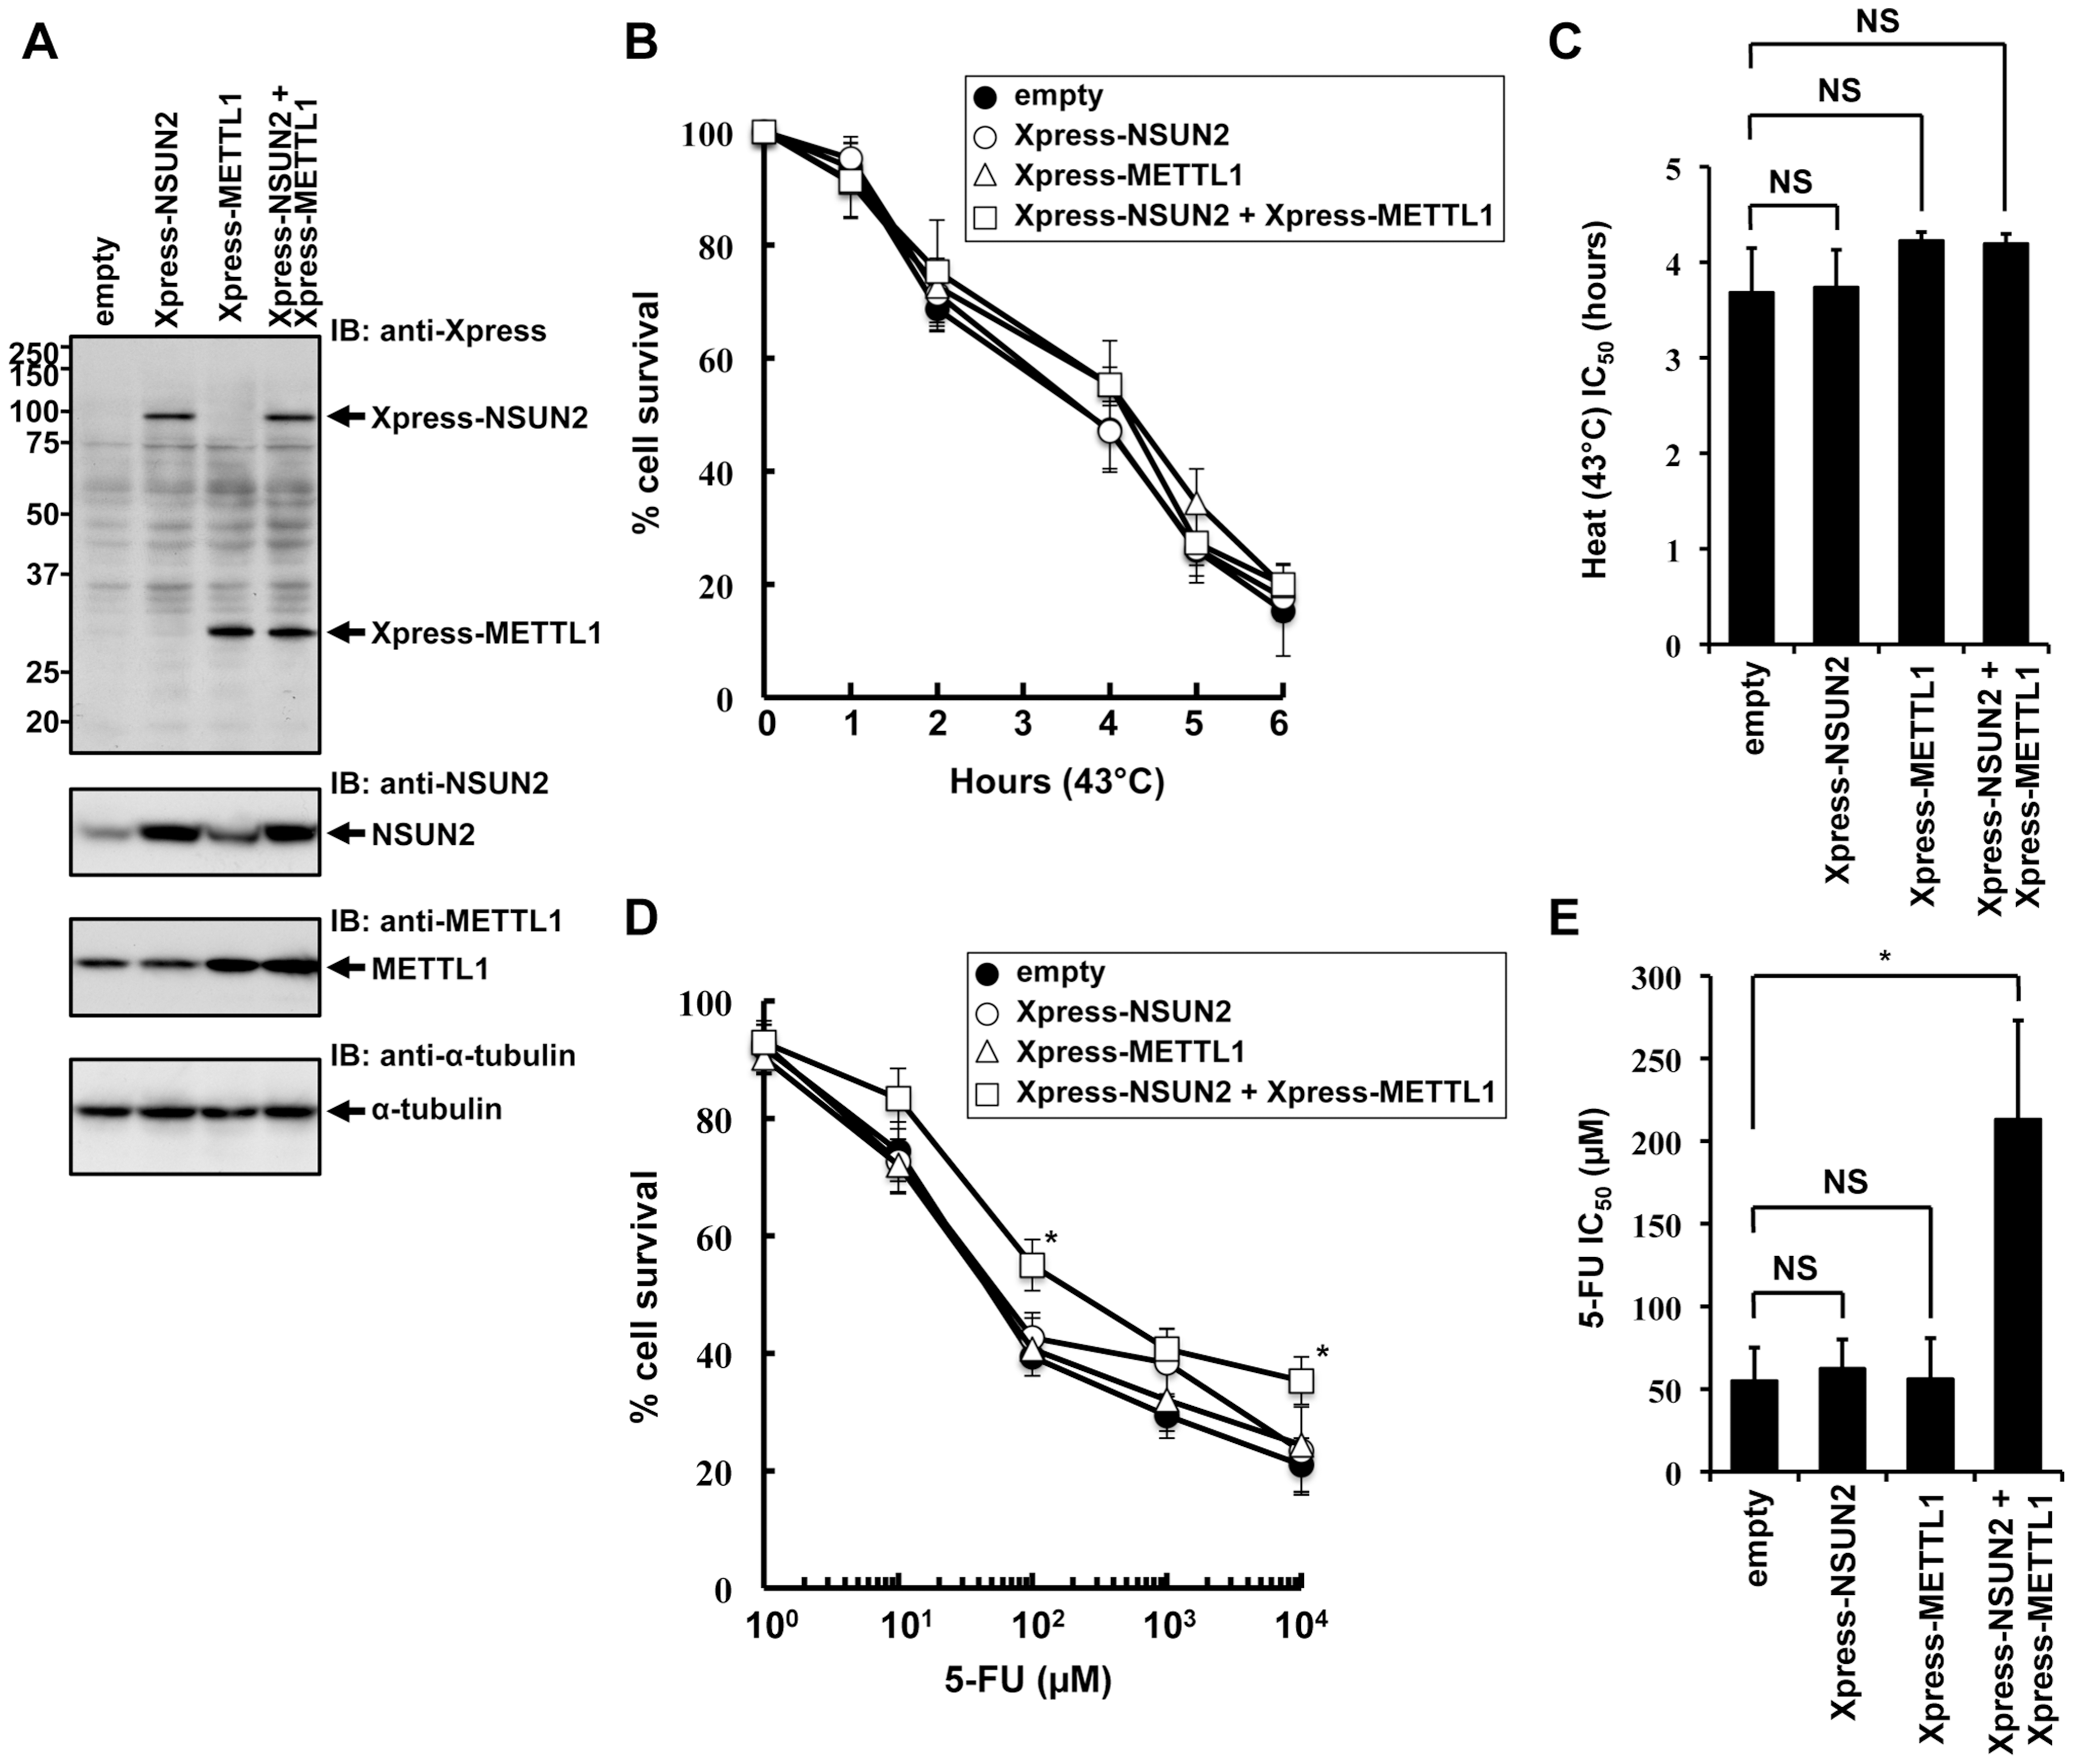 Effects of increased expression of NSUN2 and METTL1 on 5-FU-treatment and heat stress and 5-FU.